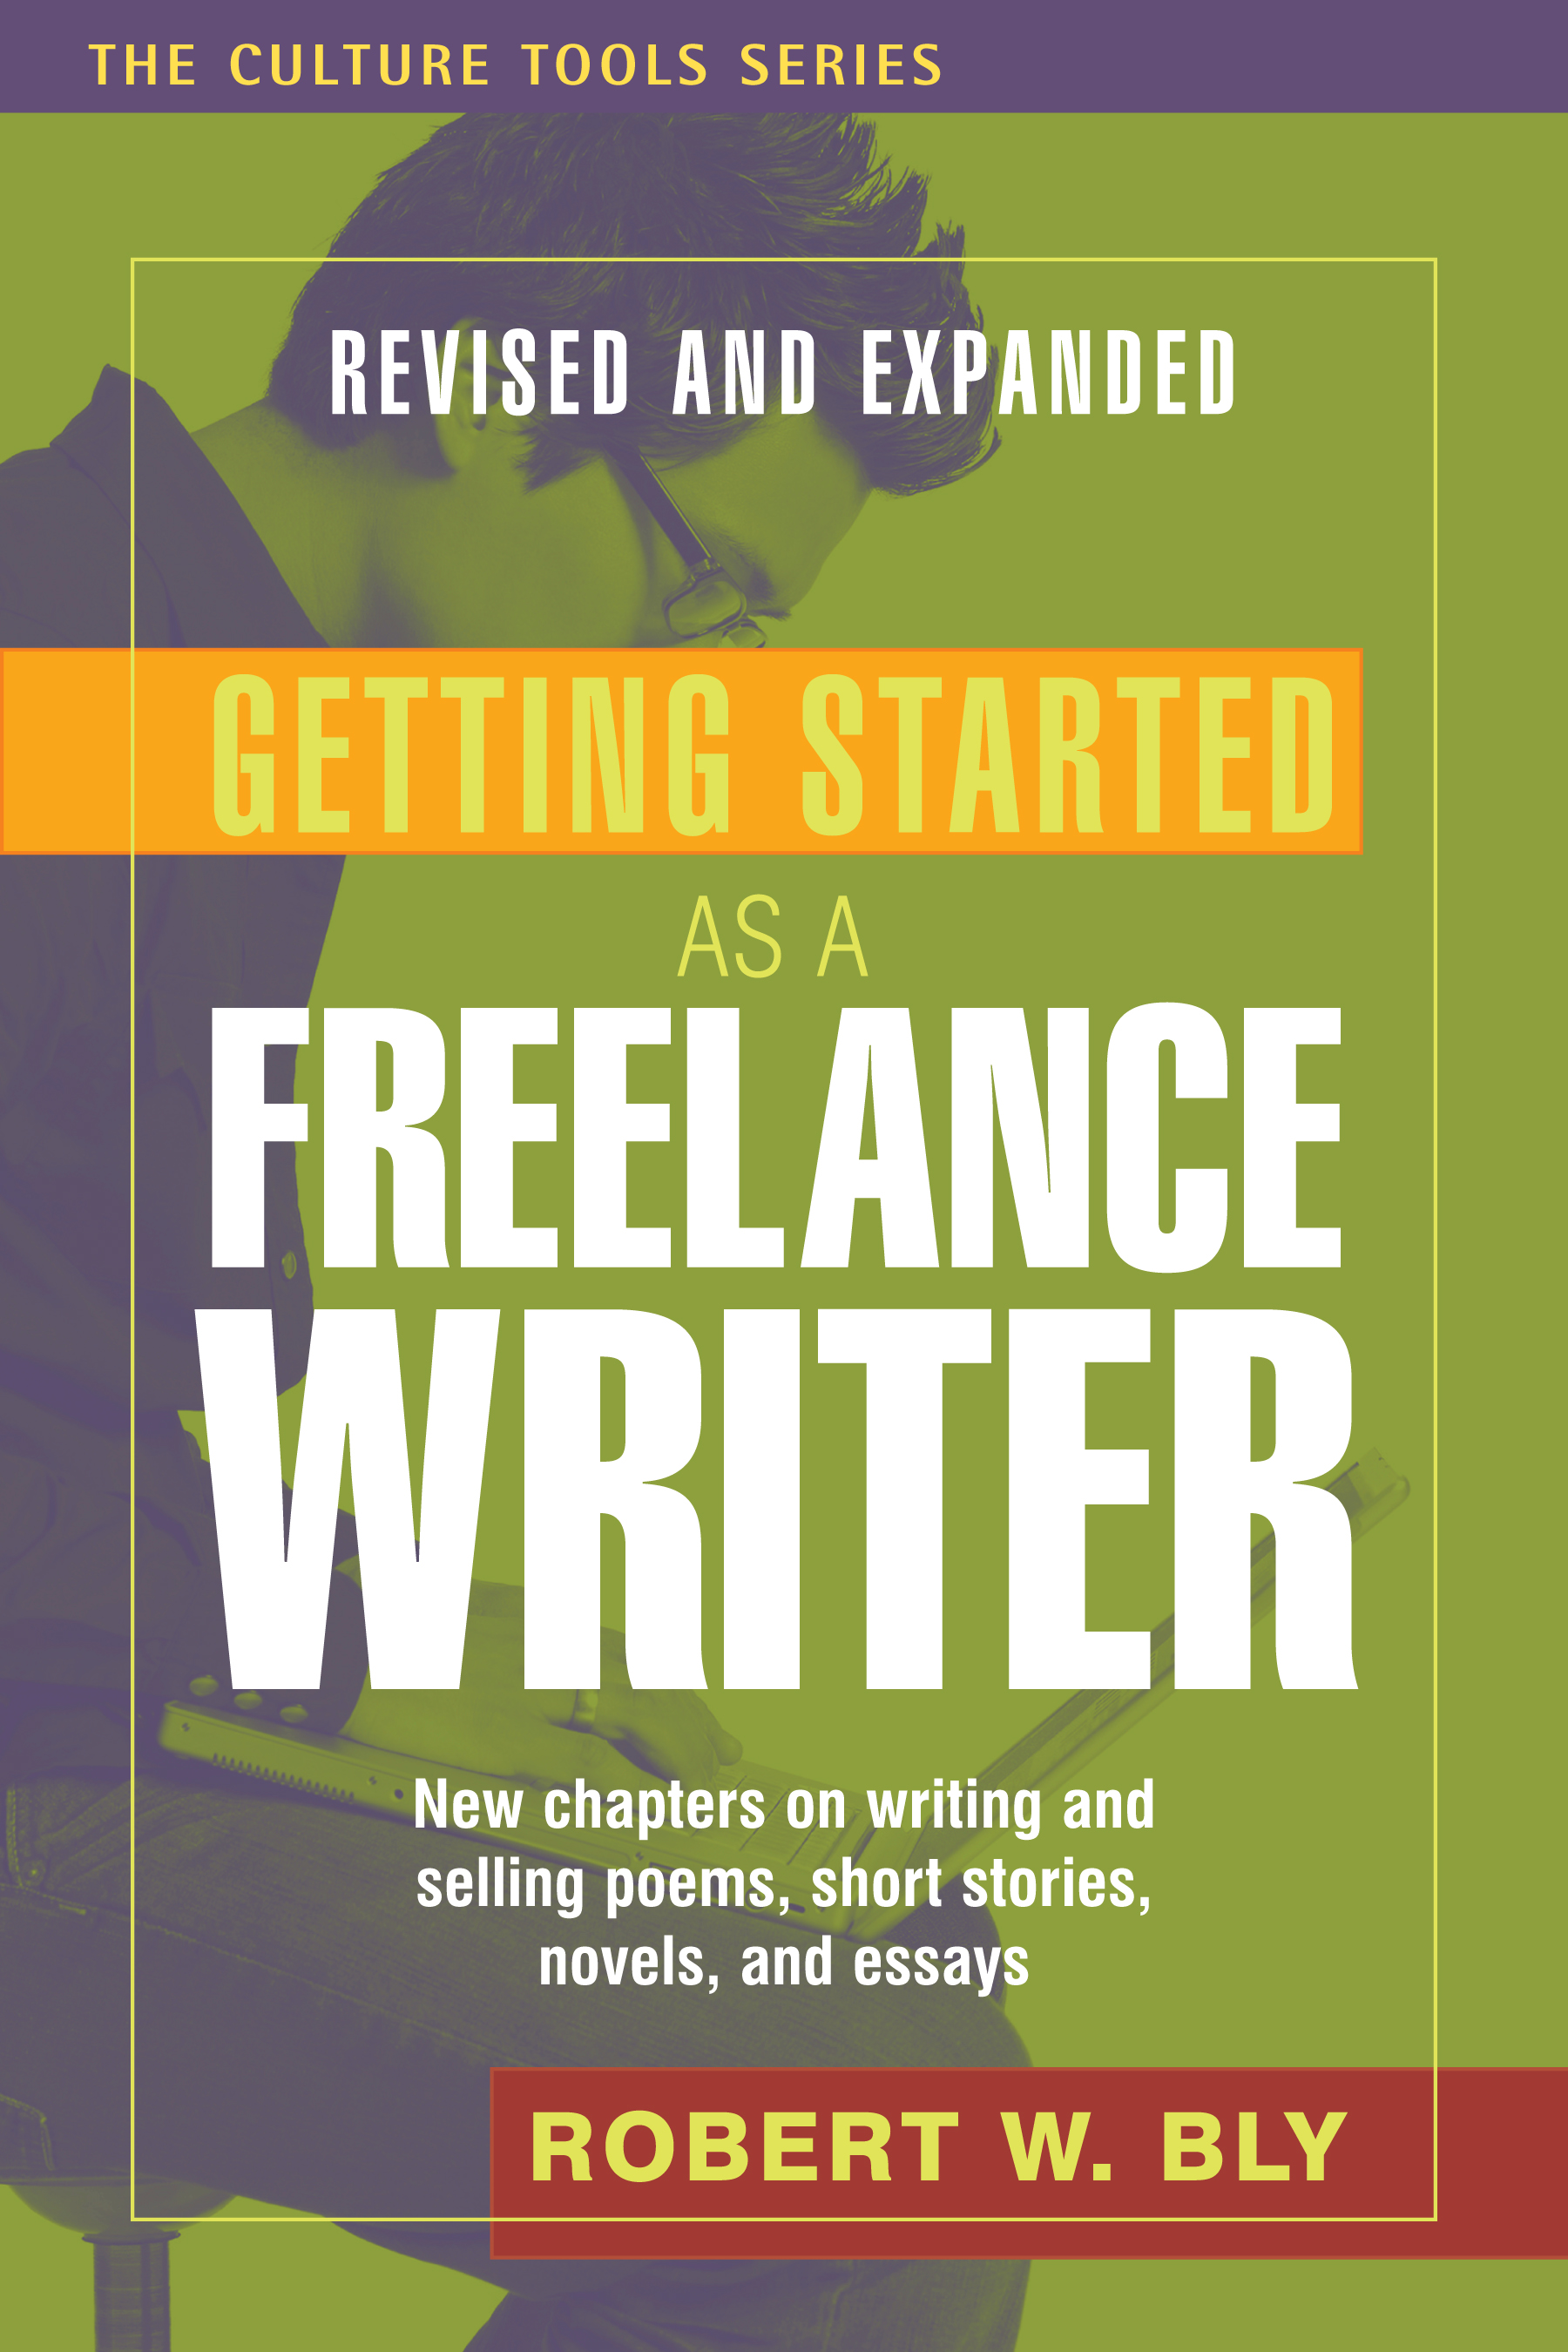 Getting Started as a Freelance Writer Cover Image